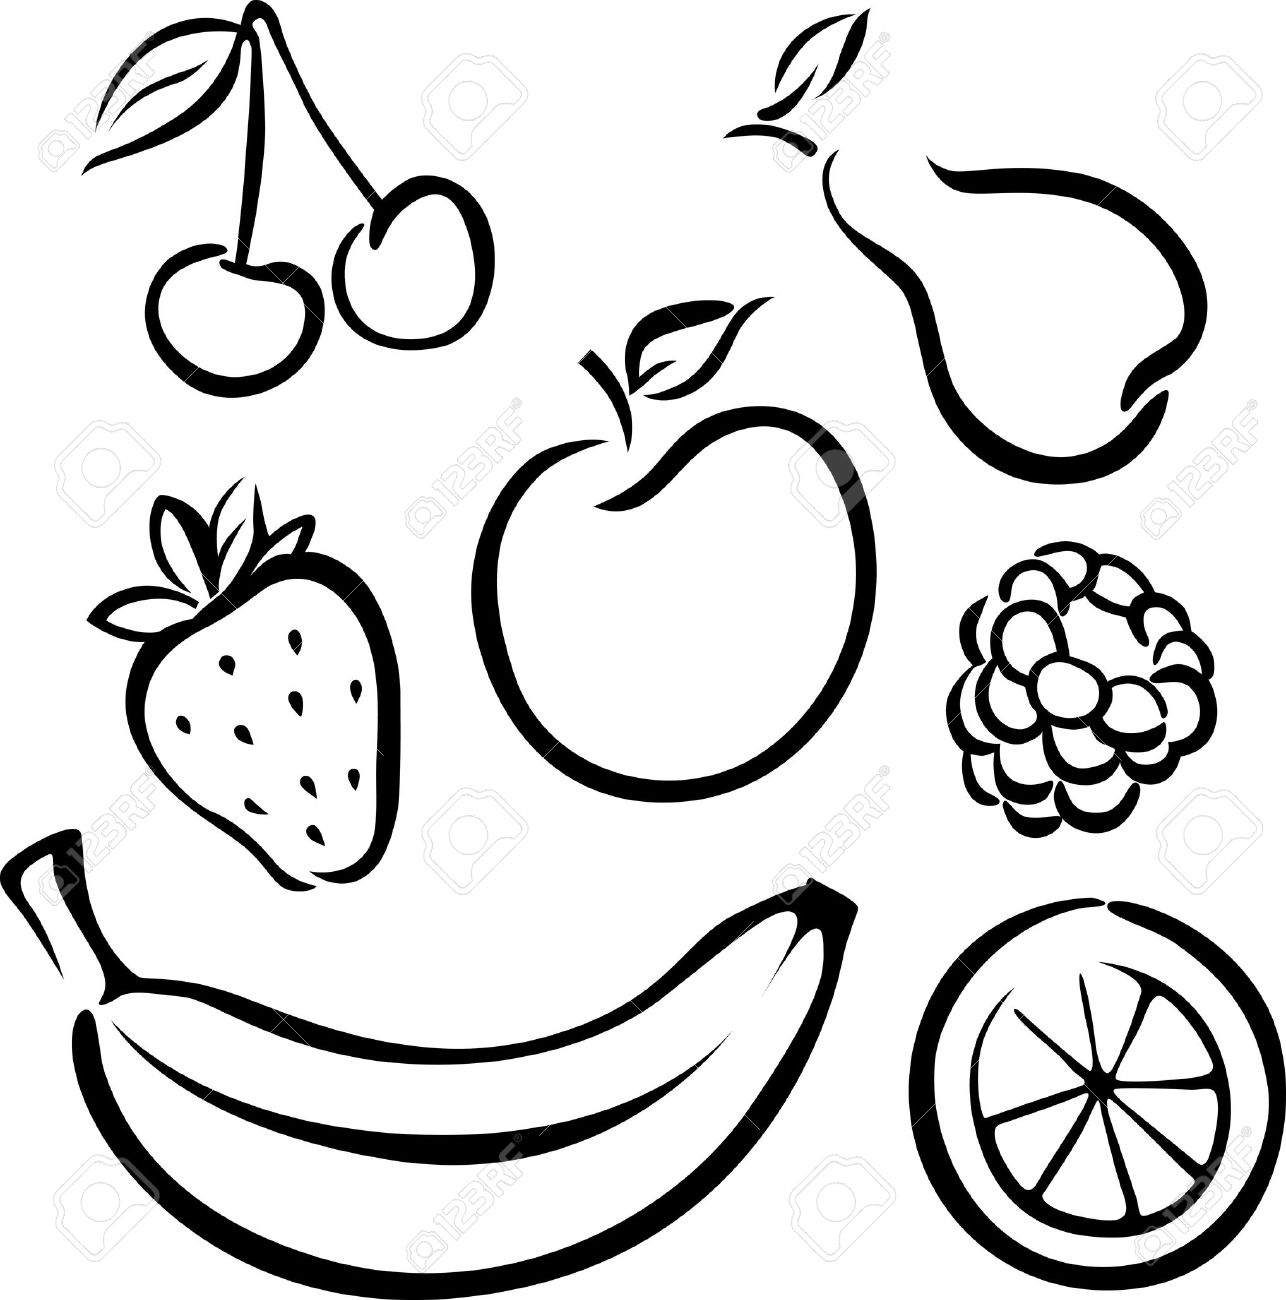 Fruit Clipart Black And White | Free download best Fruit